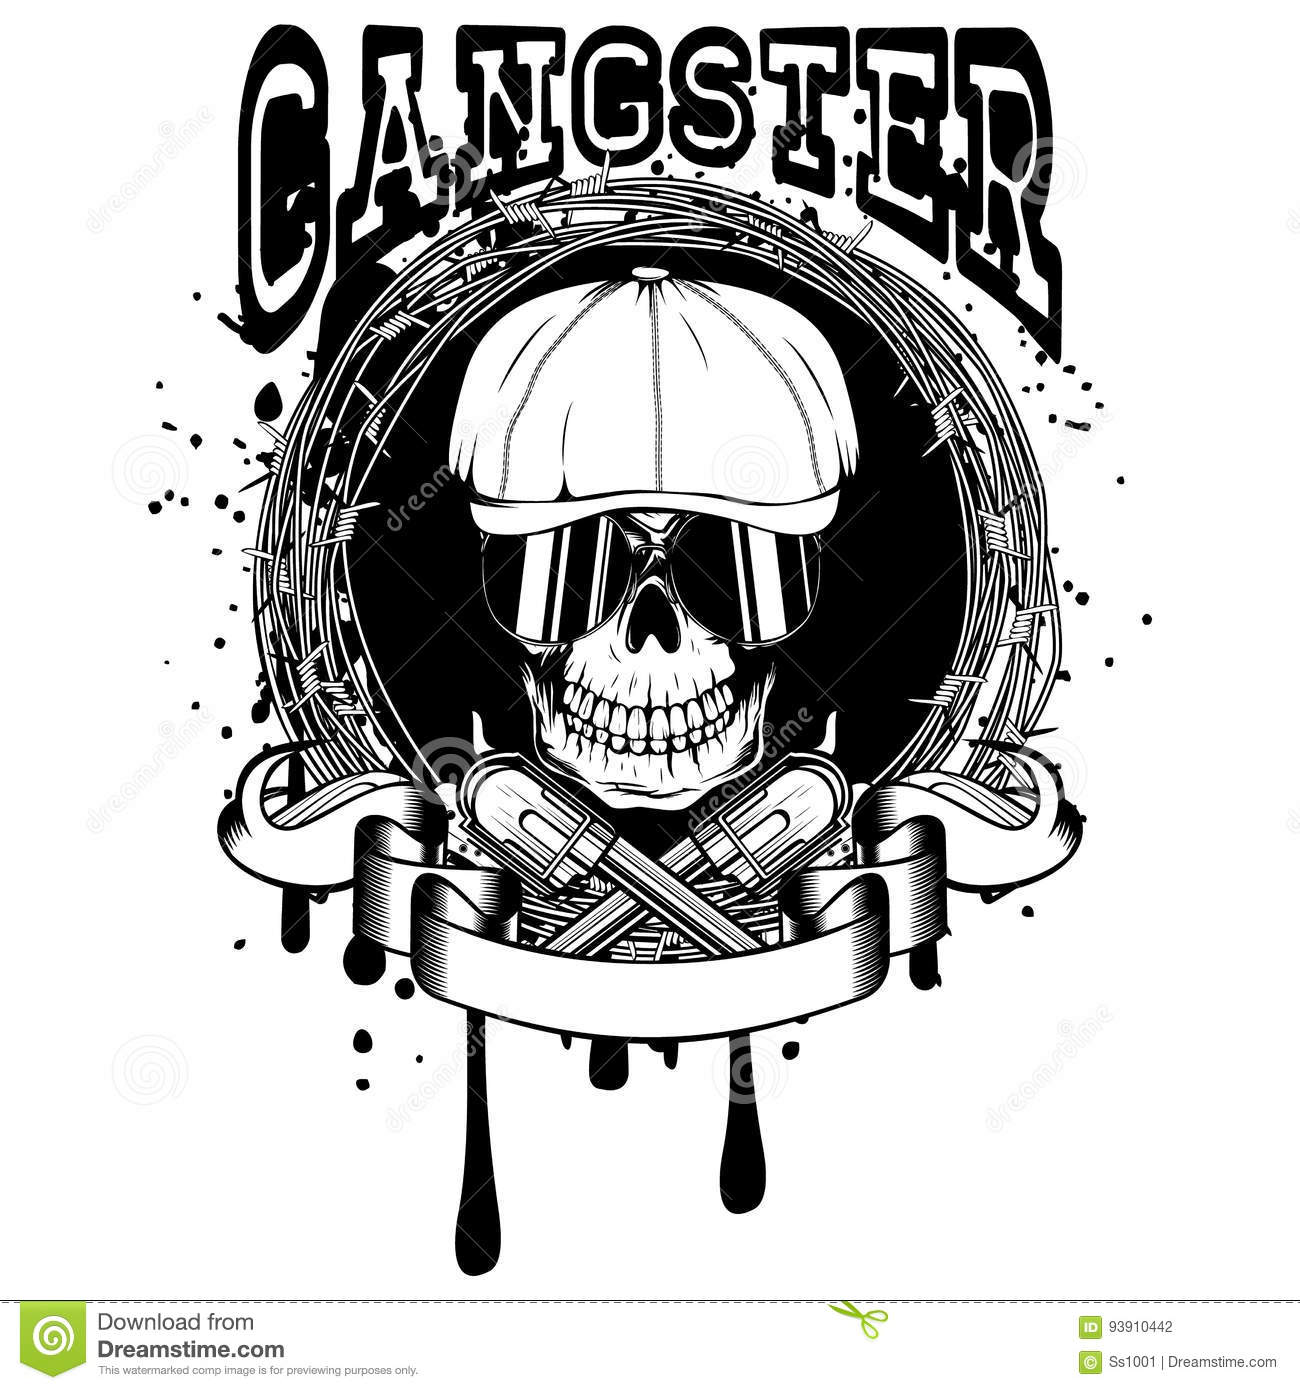 Gangster with revolvers stock vector. Image of design